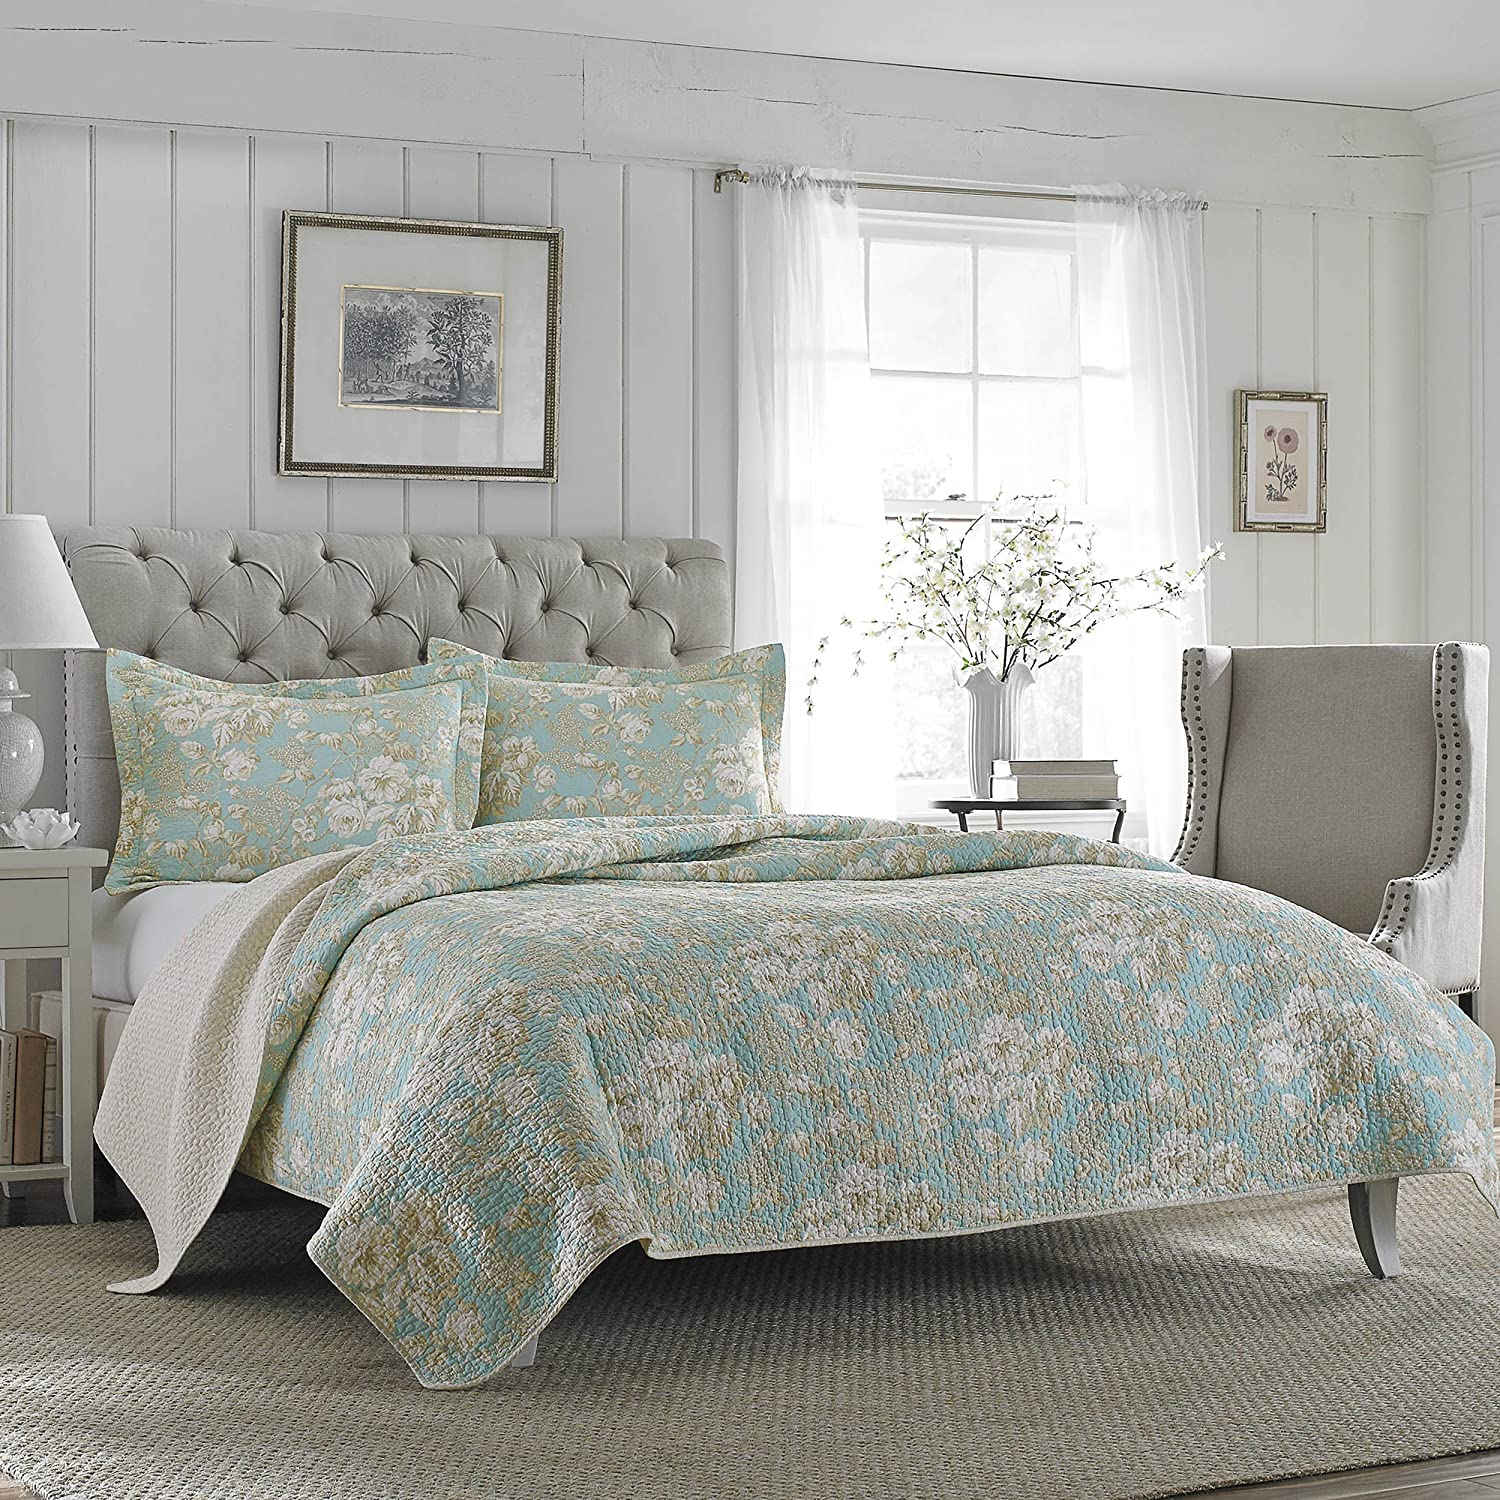 Laura Ashley Brompton Serene Reversible Quilt Set, King